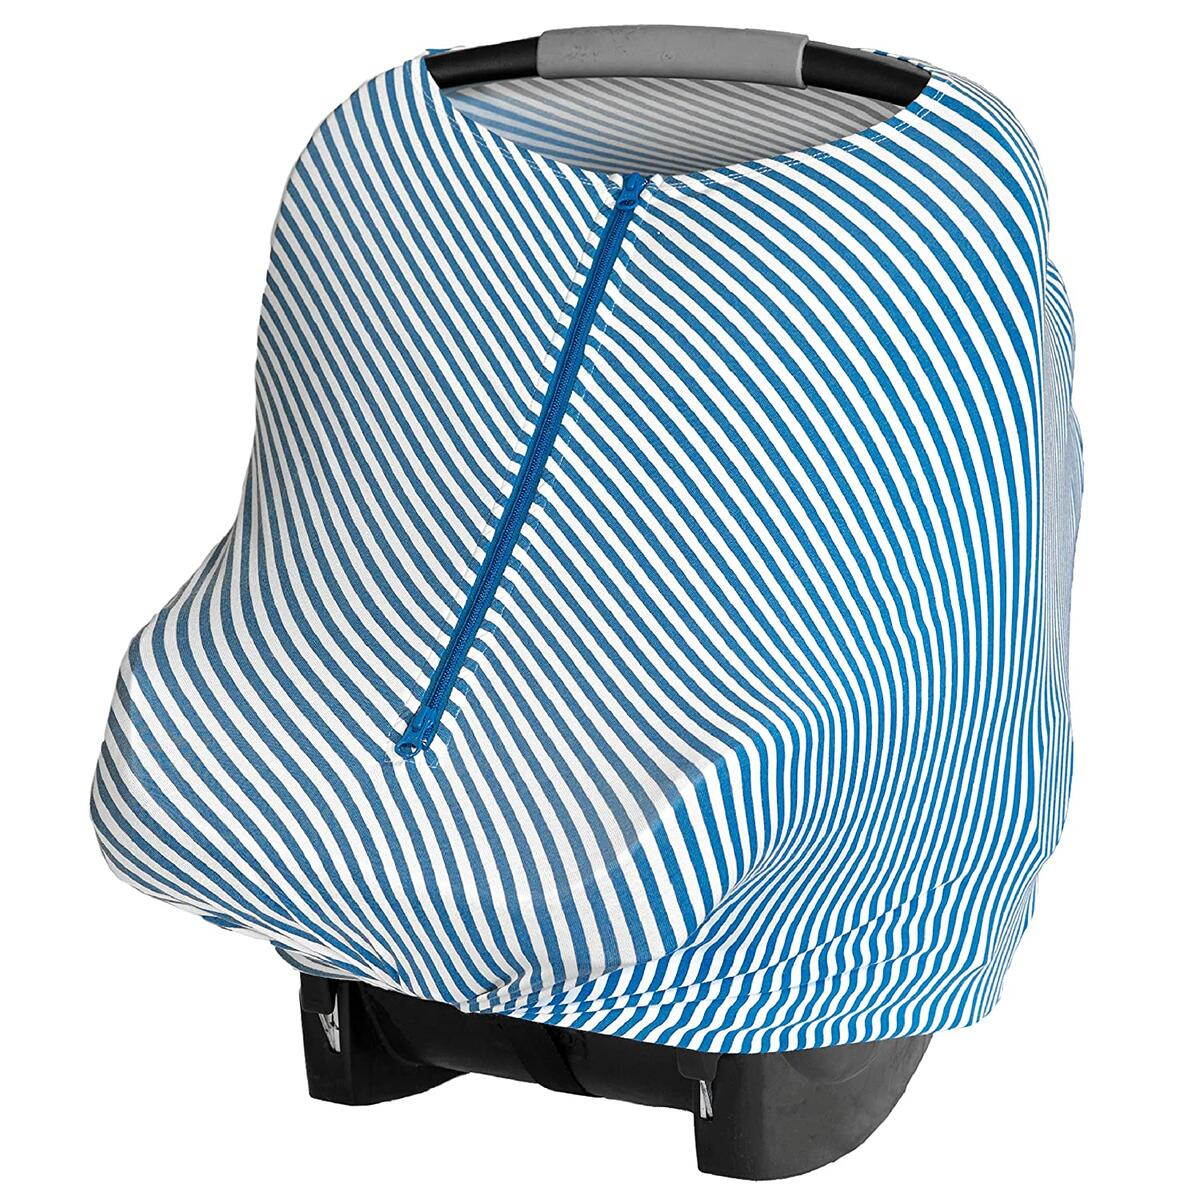 Baby Leaf Car Seat Cover with Zipper (Blue Stripes)